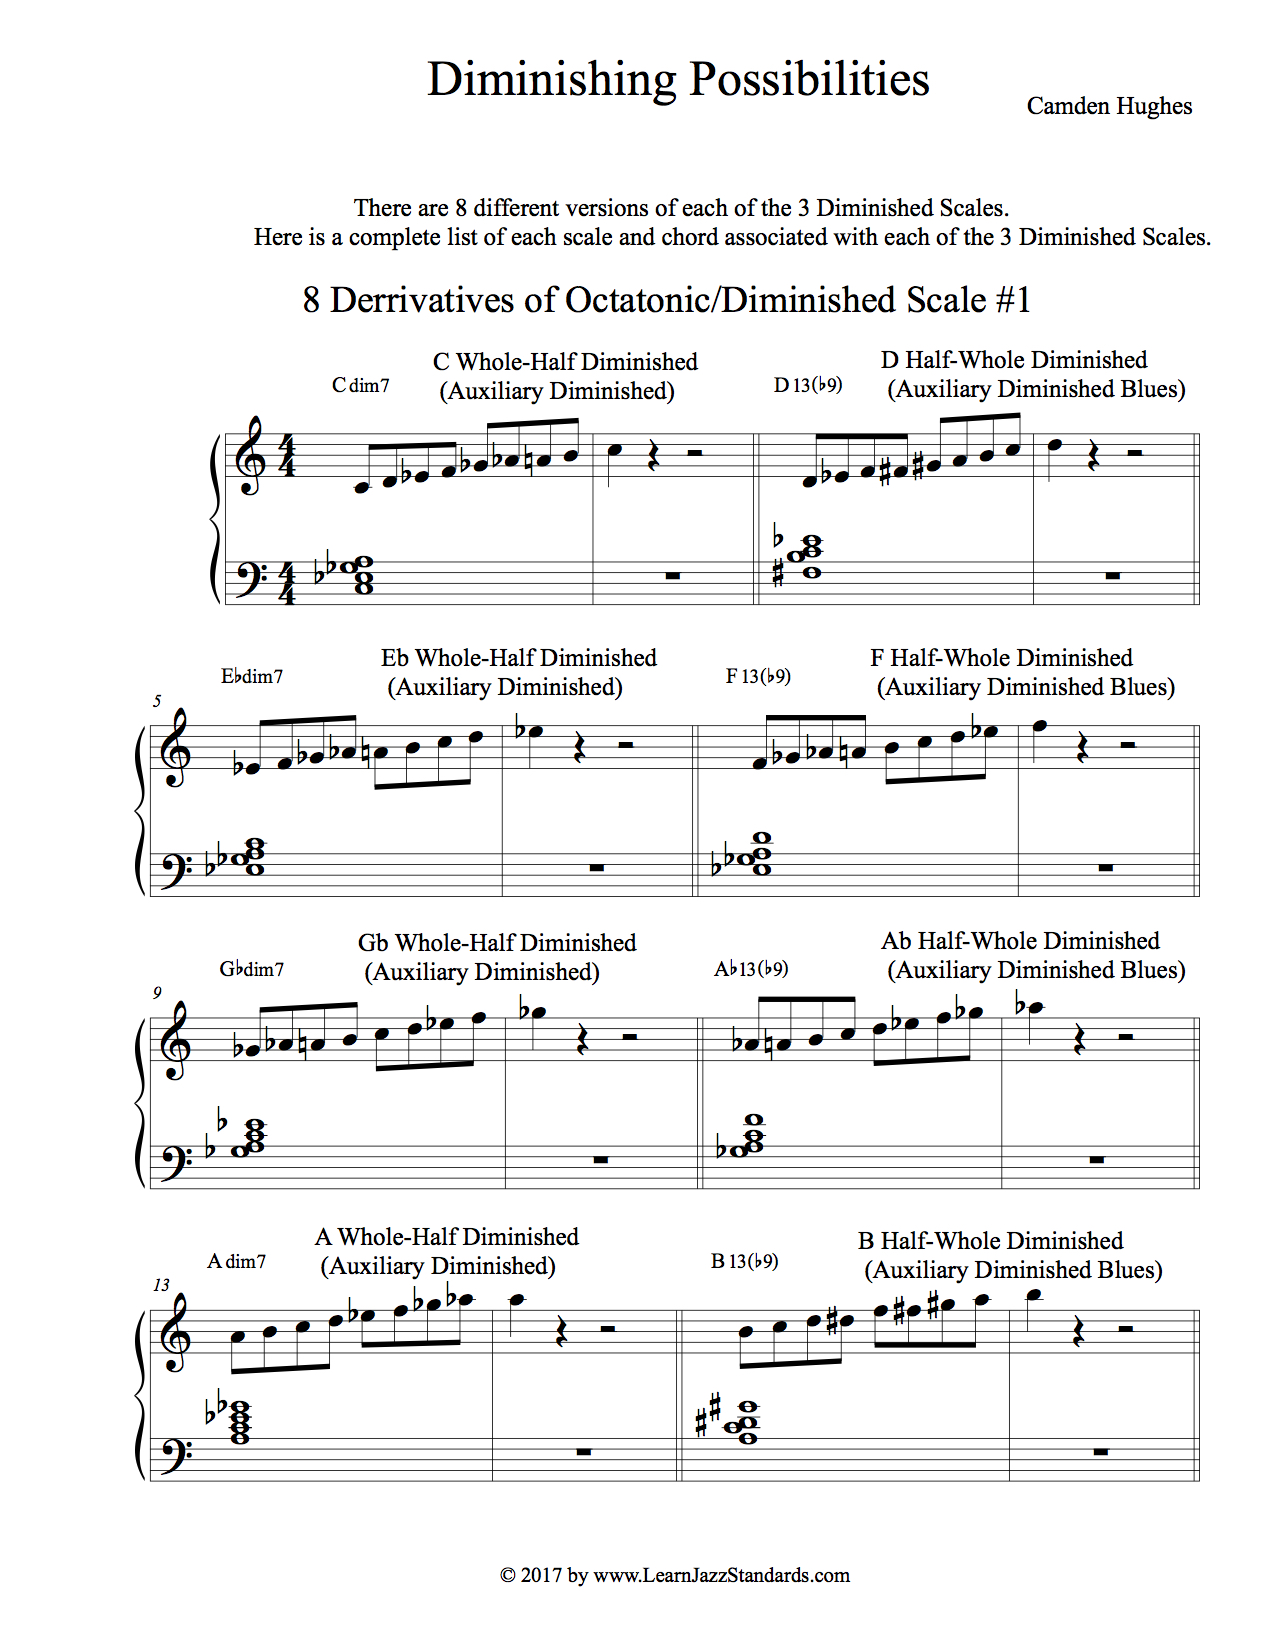 24 Places to Use the Diminished Scale - Learn Jazz Standards